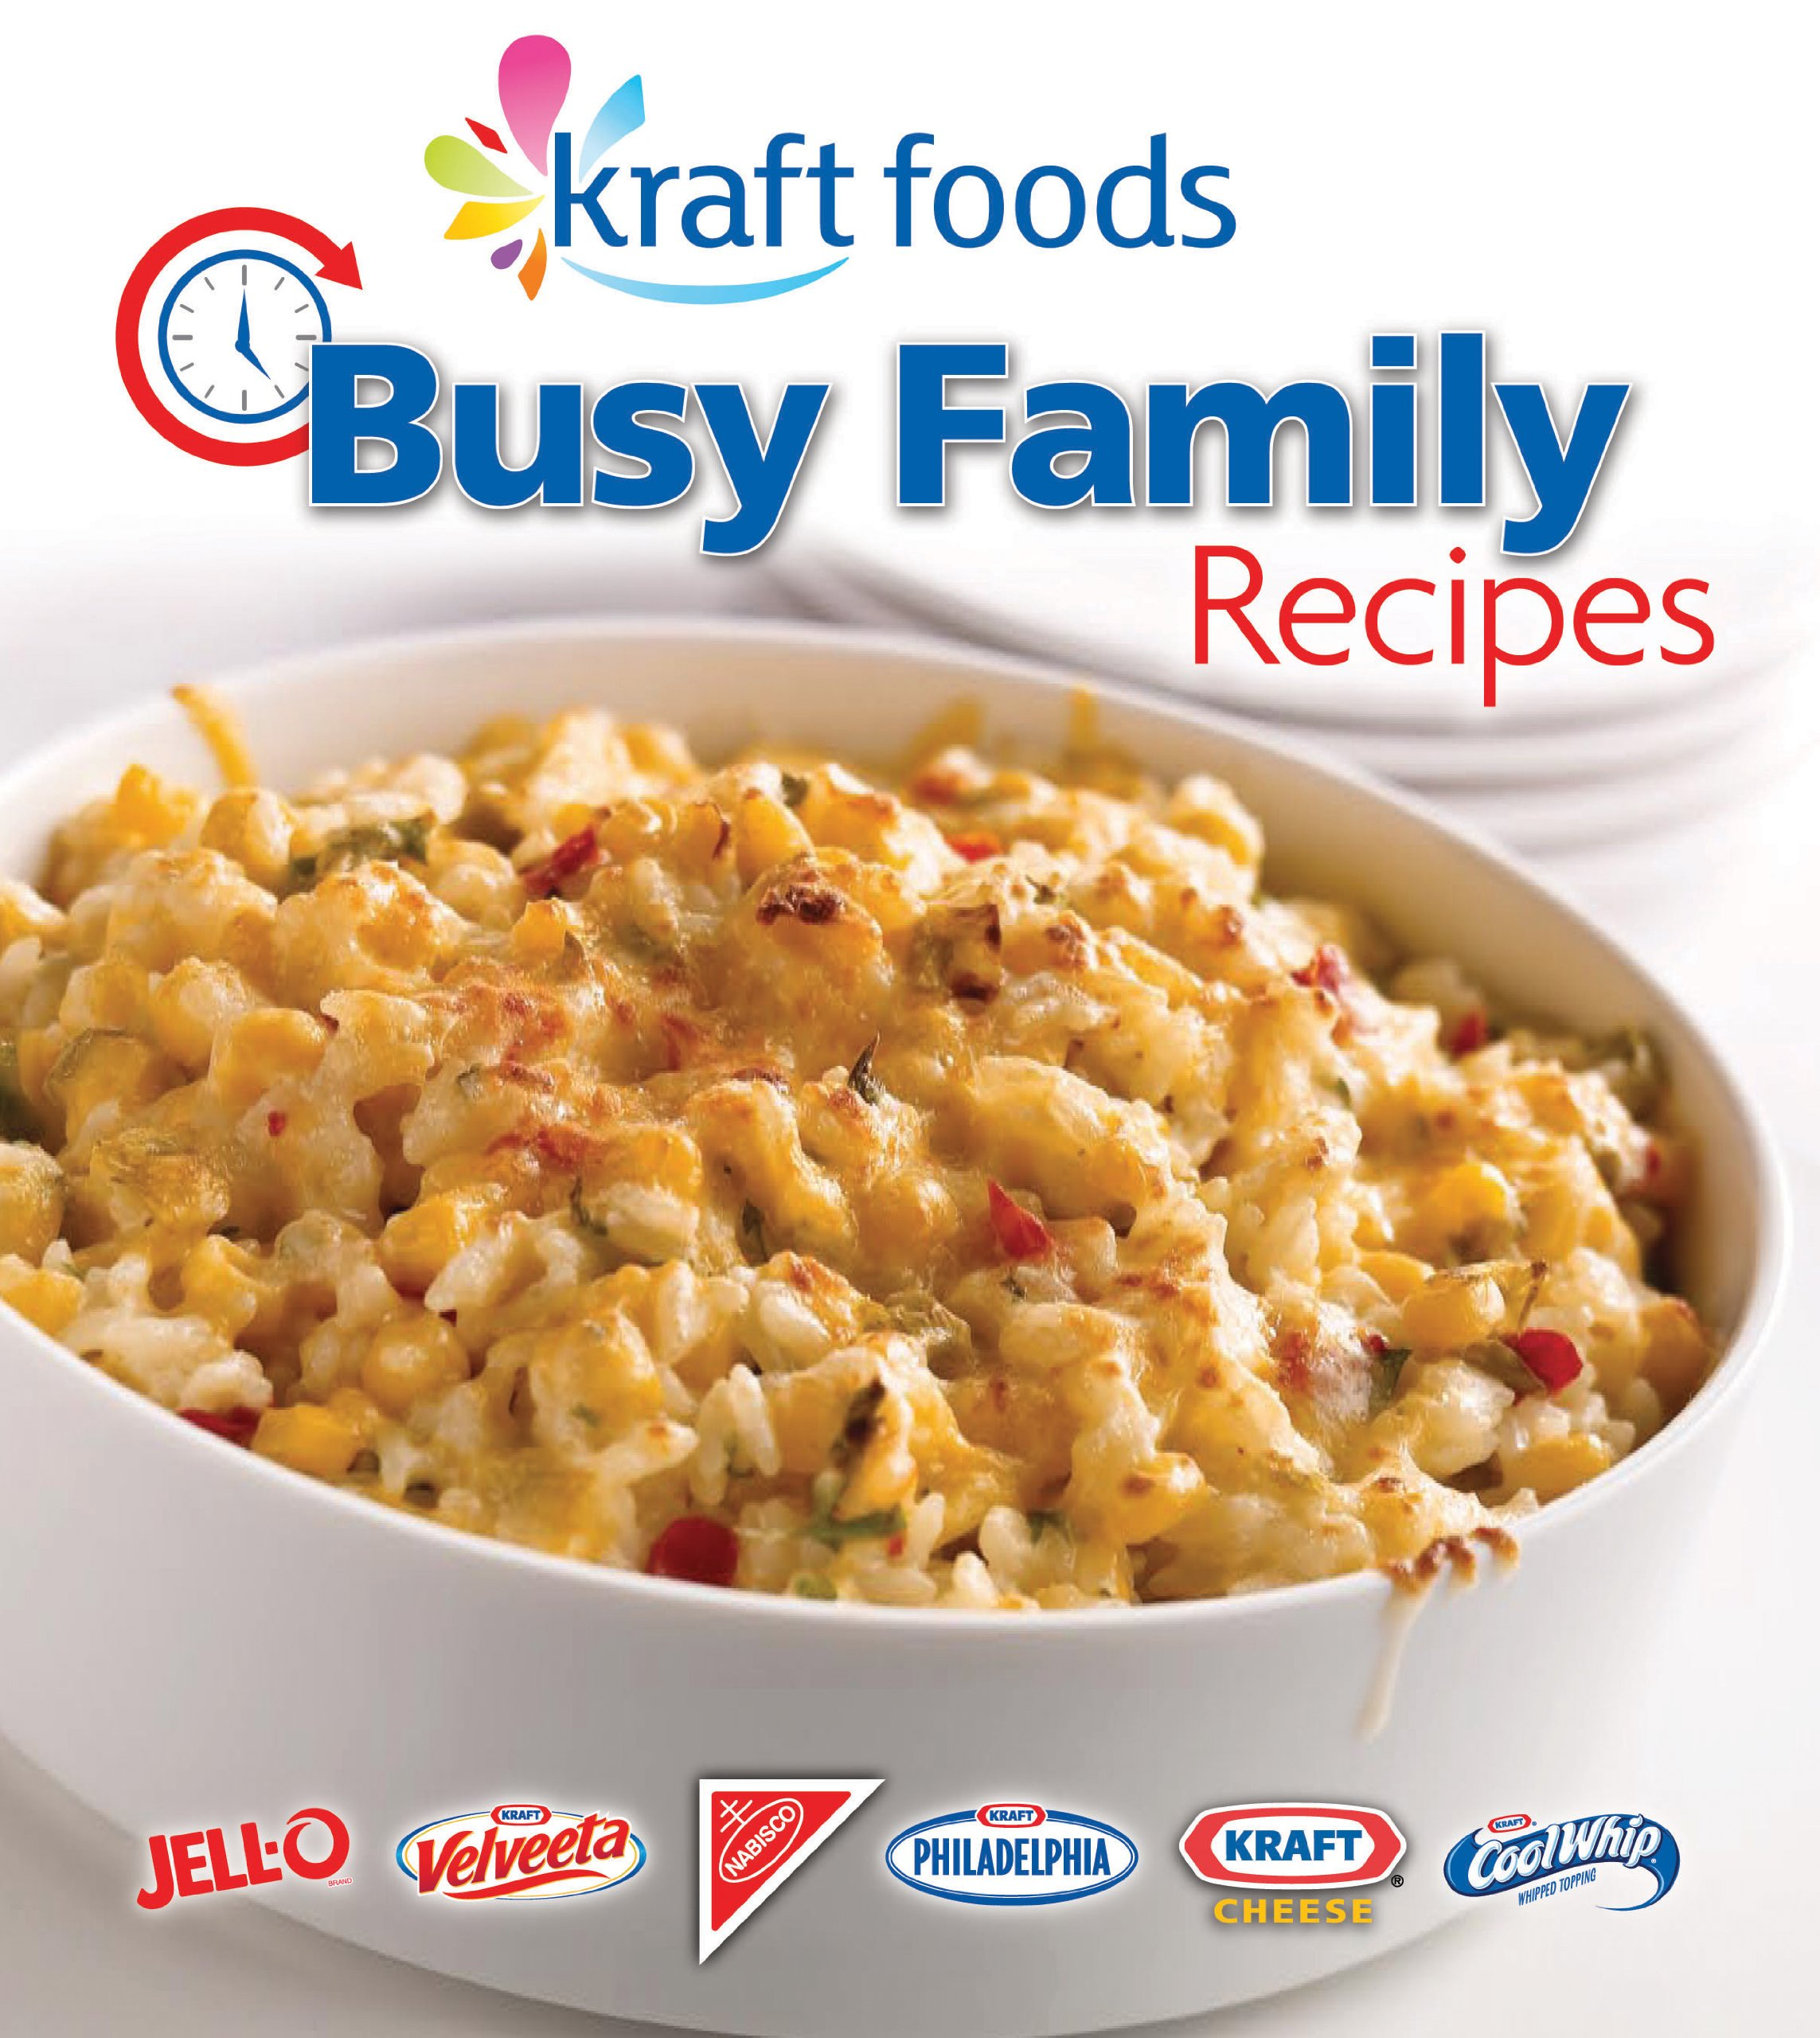 Kraft foods busy family recipes amazon publications kraft foods busy family recipes amazon publications international 9781605531830 books forumfinder Image collections